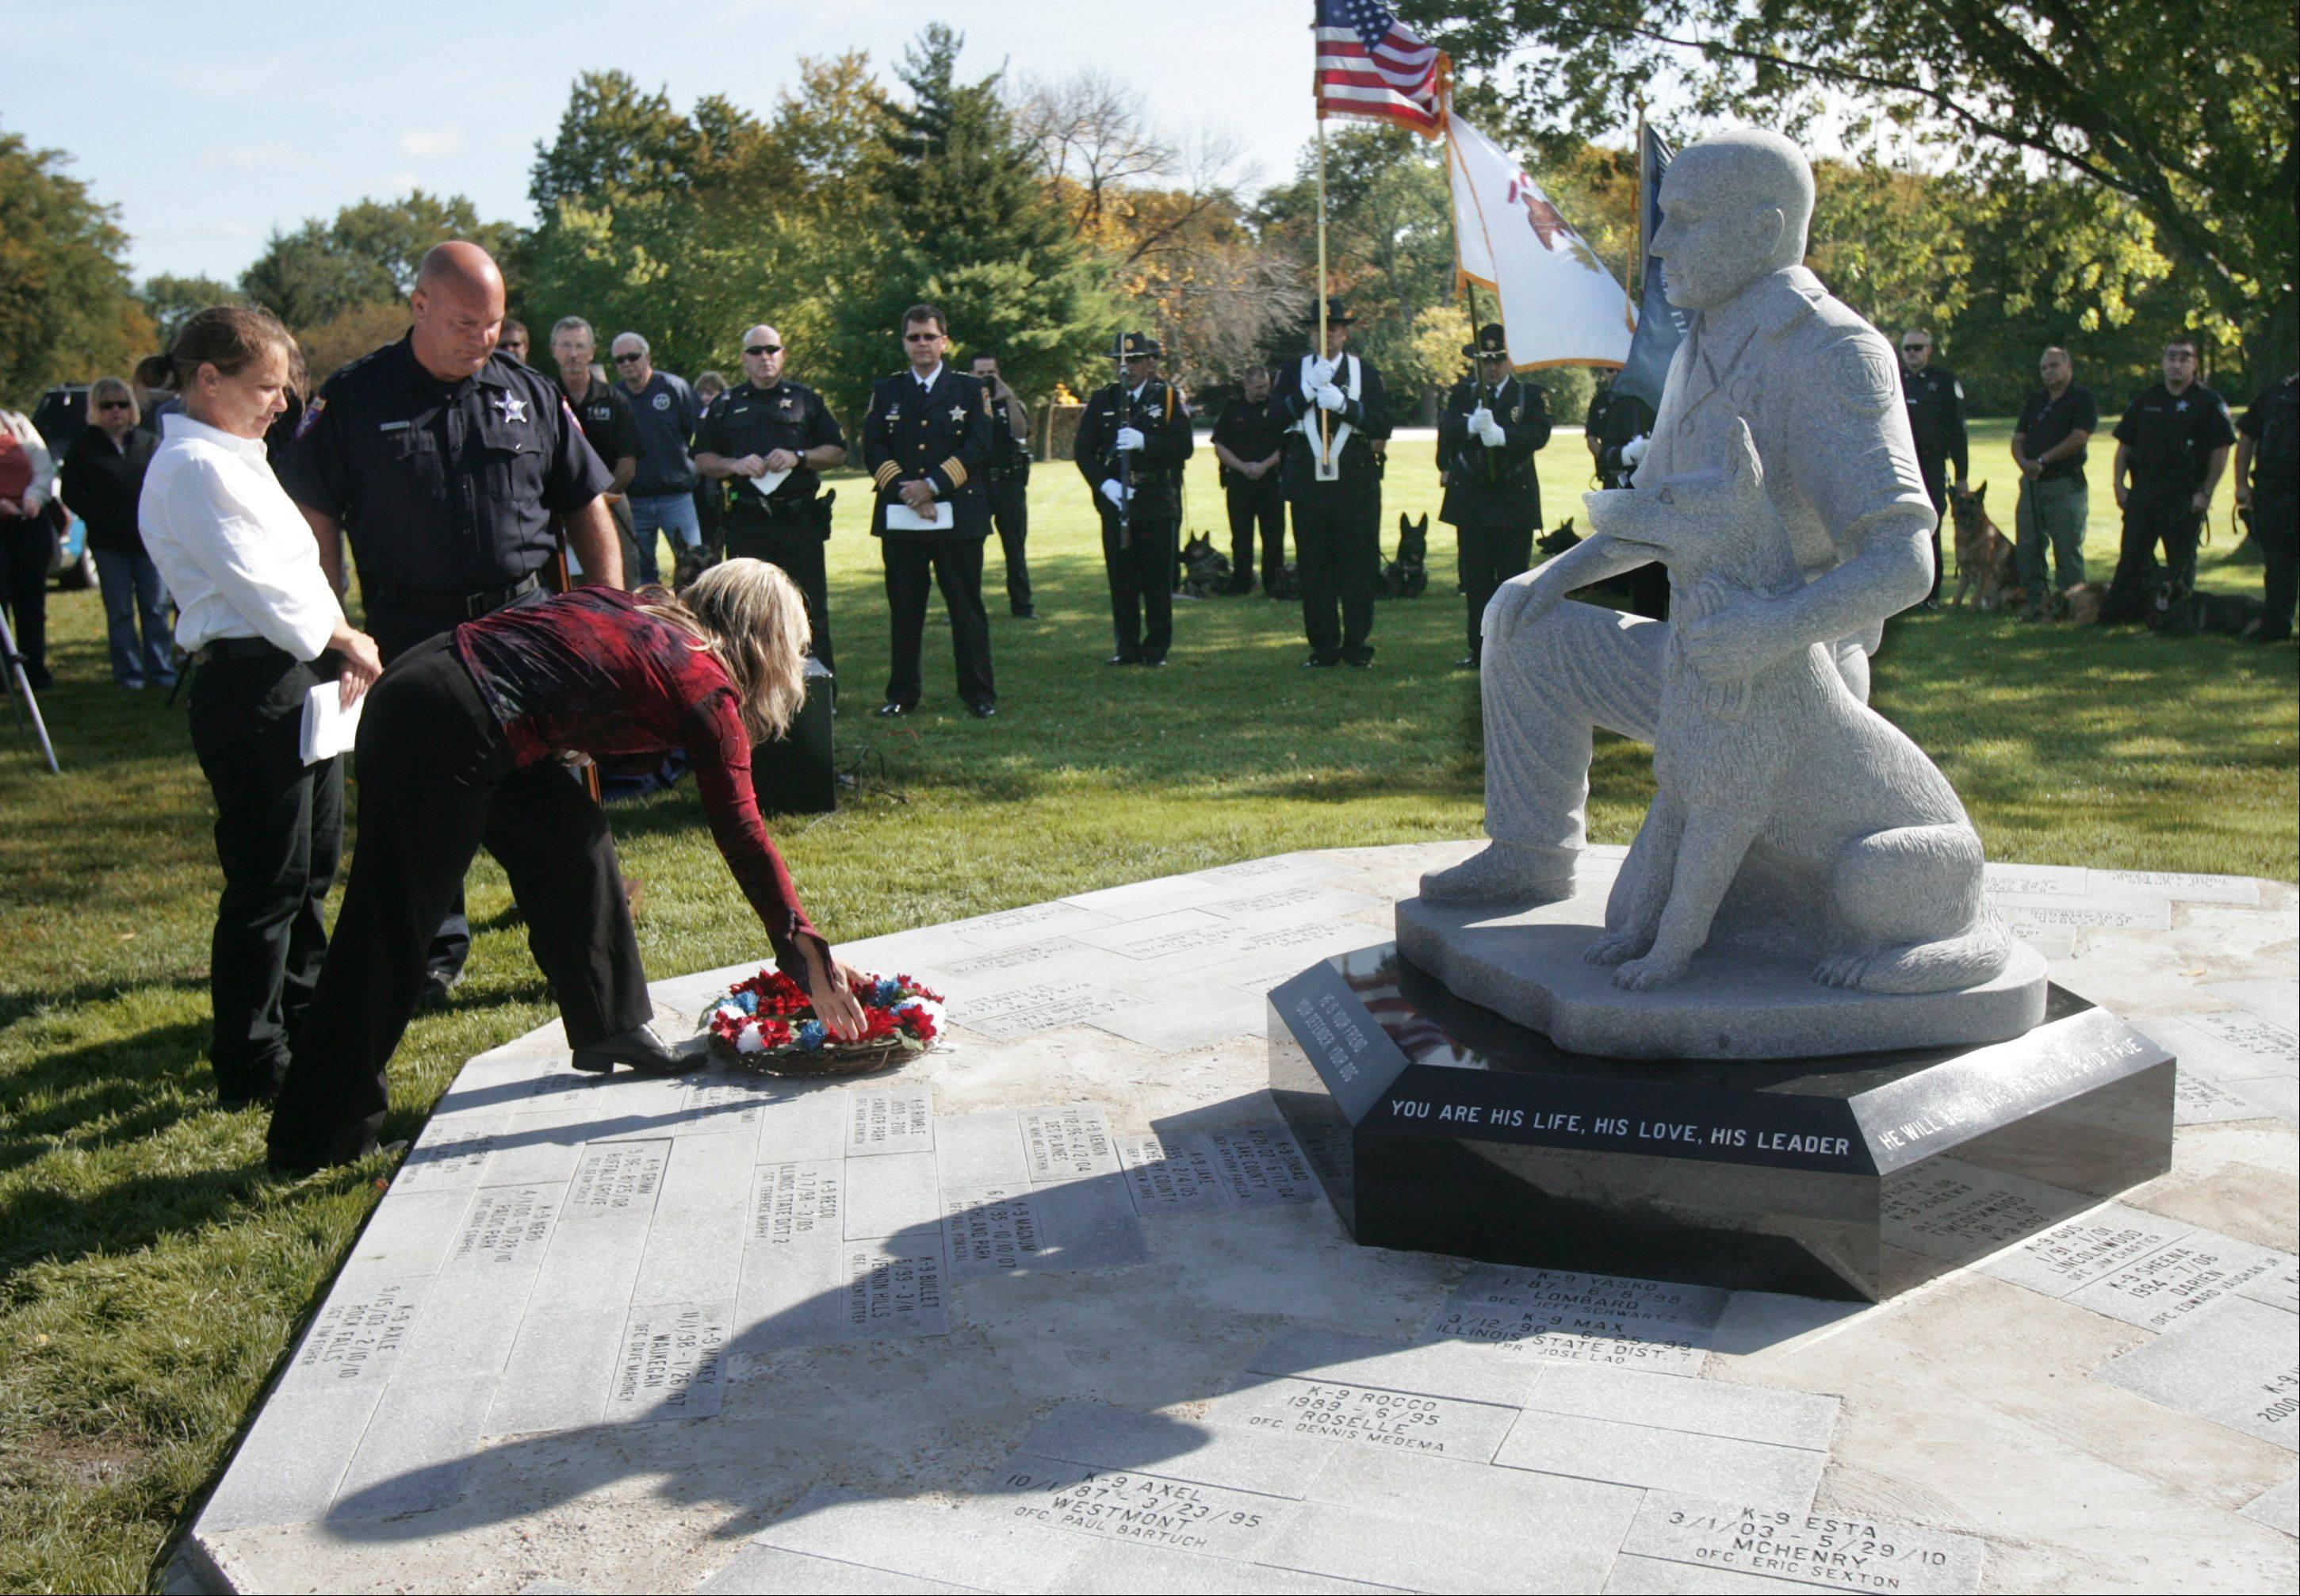 Traci Sikorski places a wreath at the memorial with Paula Rothacker and Anthony Fanella, all of whom worked to create the Northern Illinois Police K-9 Memorial. The memorial is for all police departments north of I-80. Officers from Tinley Park to Zion traveled to the Gurnee area for Wednesday's unveiling ceremony.